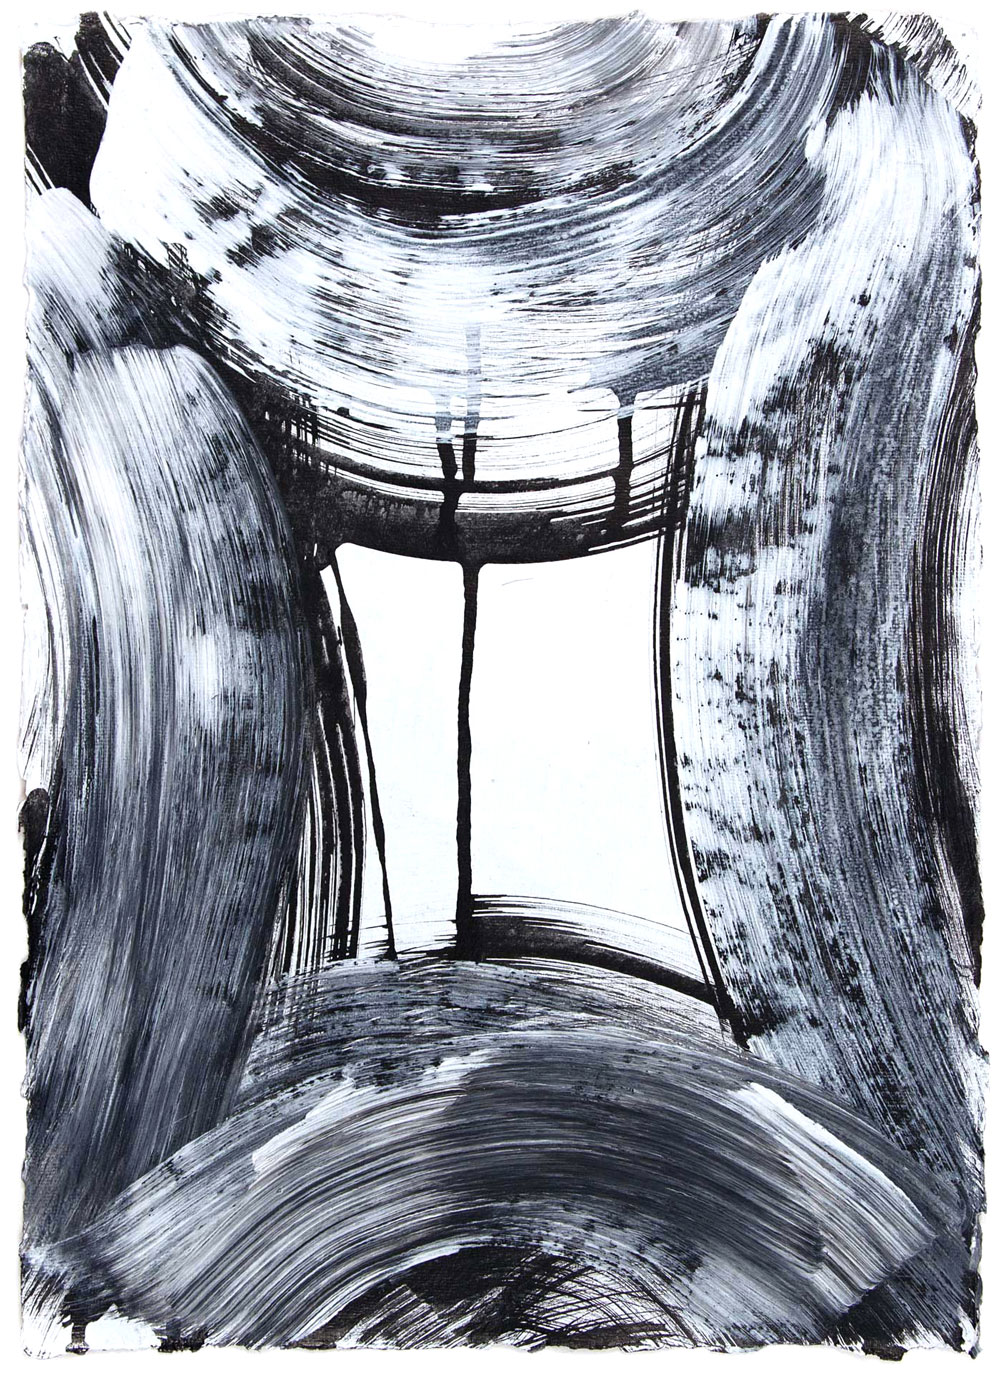 Vault 9, 2015 Sumi ink and gesso on paper 16.5 x 12 in.